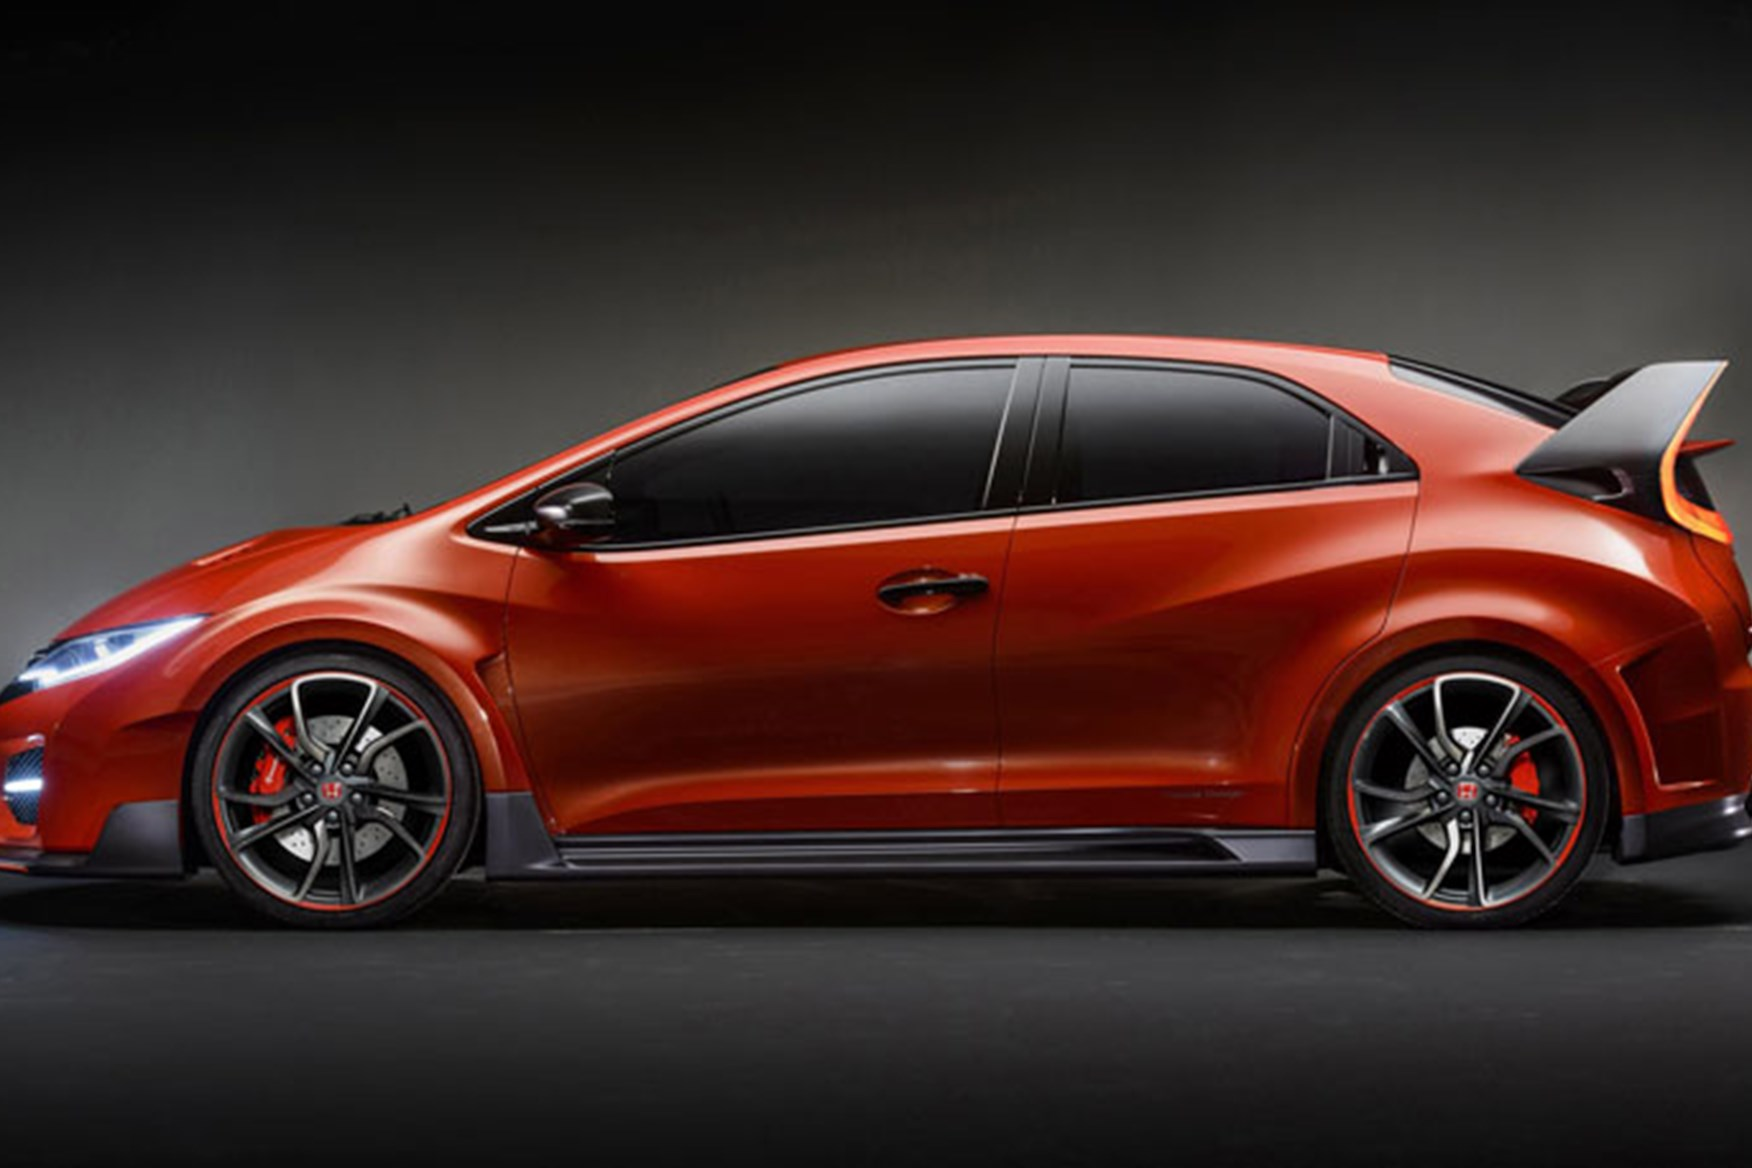 ... The Blueprint: Honda Civic Type R Concept Car Shown At 2014 Geneva  Motor Show